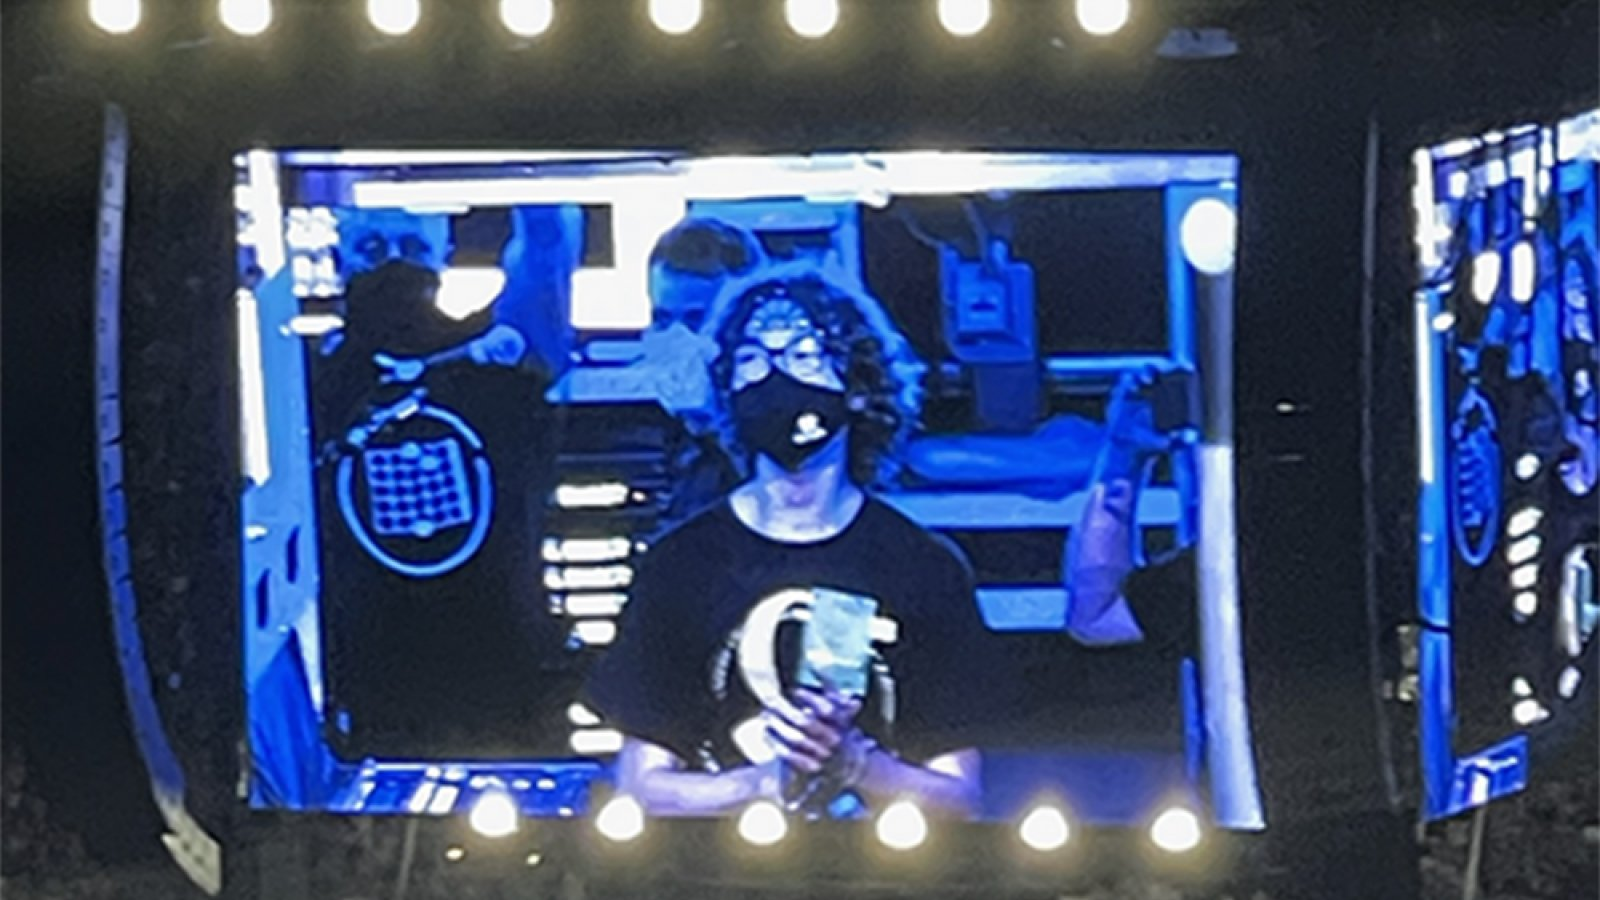 Carson Emeigh, a senior in mechanical and materials engineering, is introduced by Garth Brooks to the crowd of 90,000 fans in Memorial Stadium for the Aug. 14 concert. (Photo courtesy Carson Emeigh)